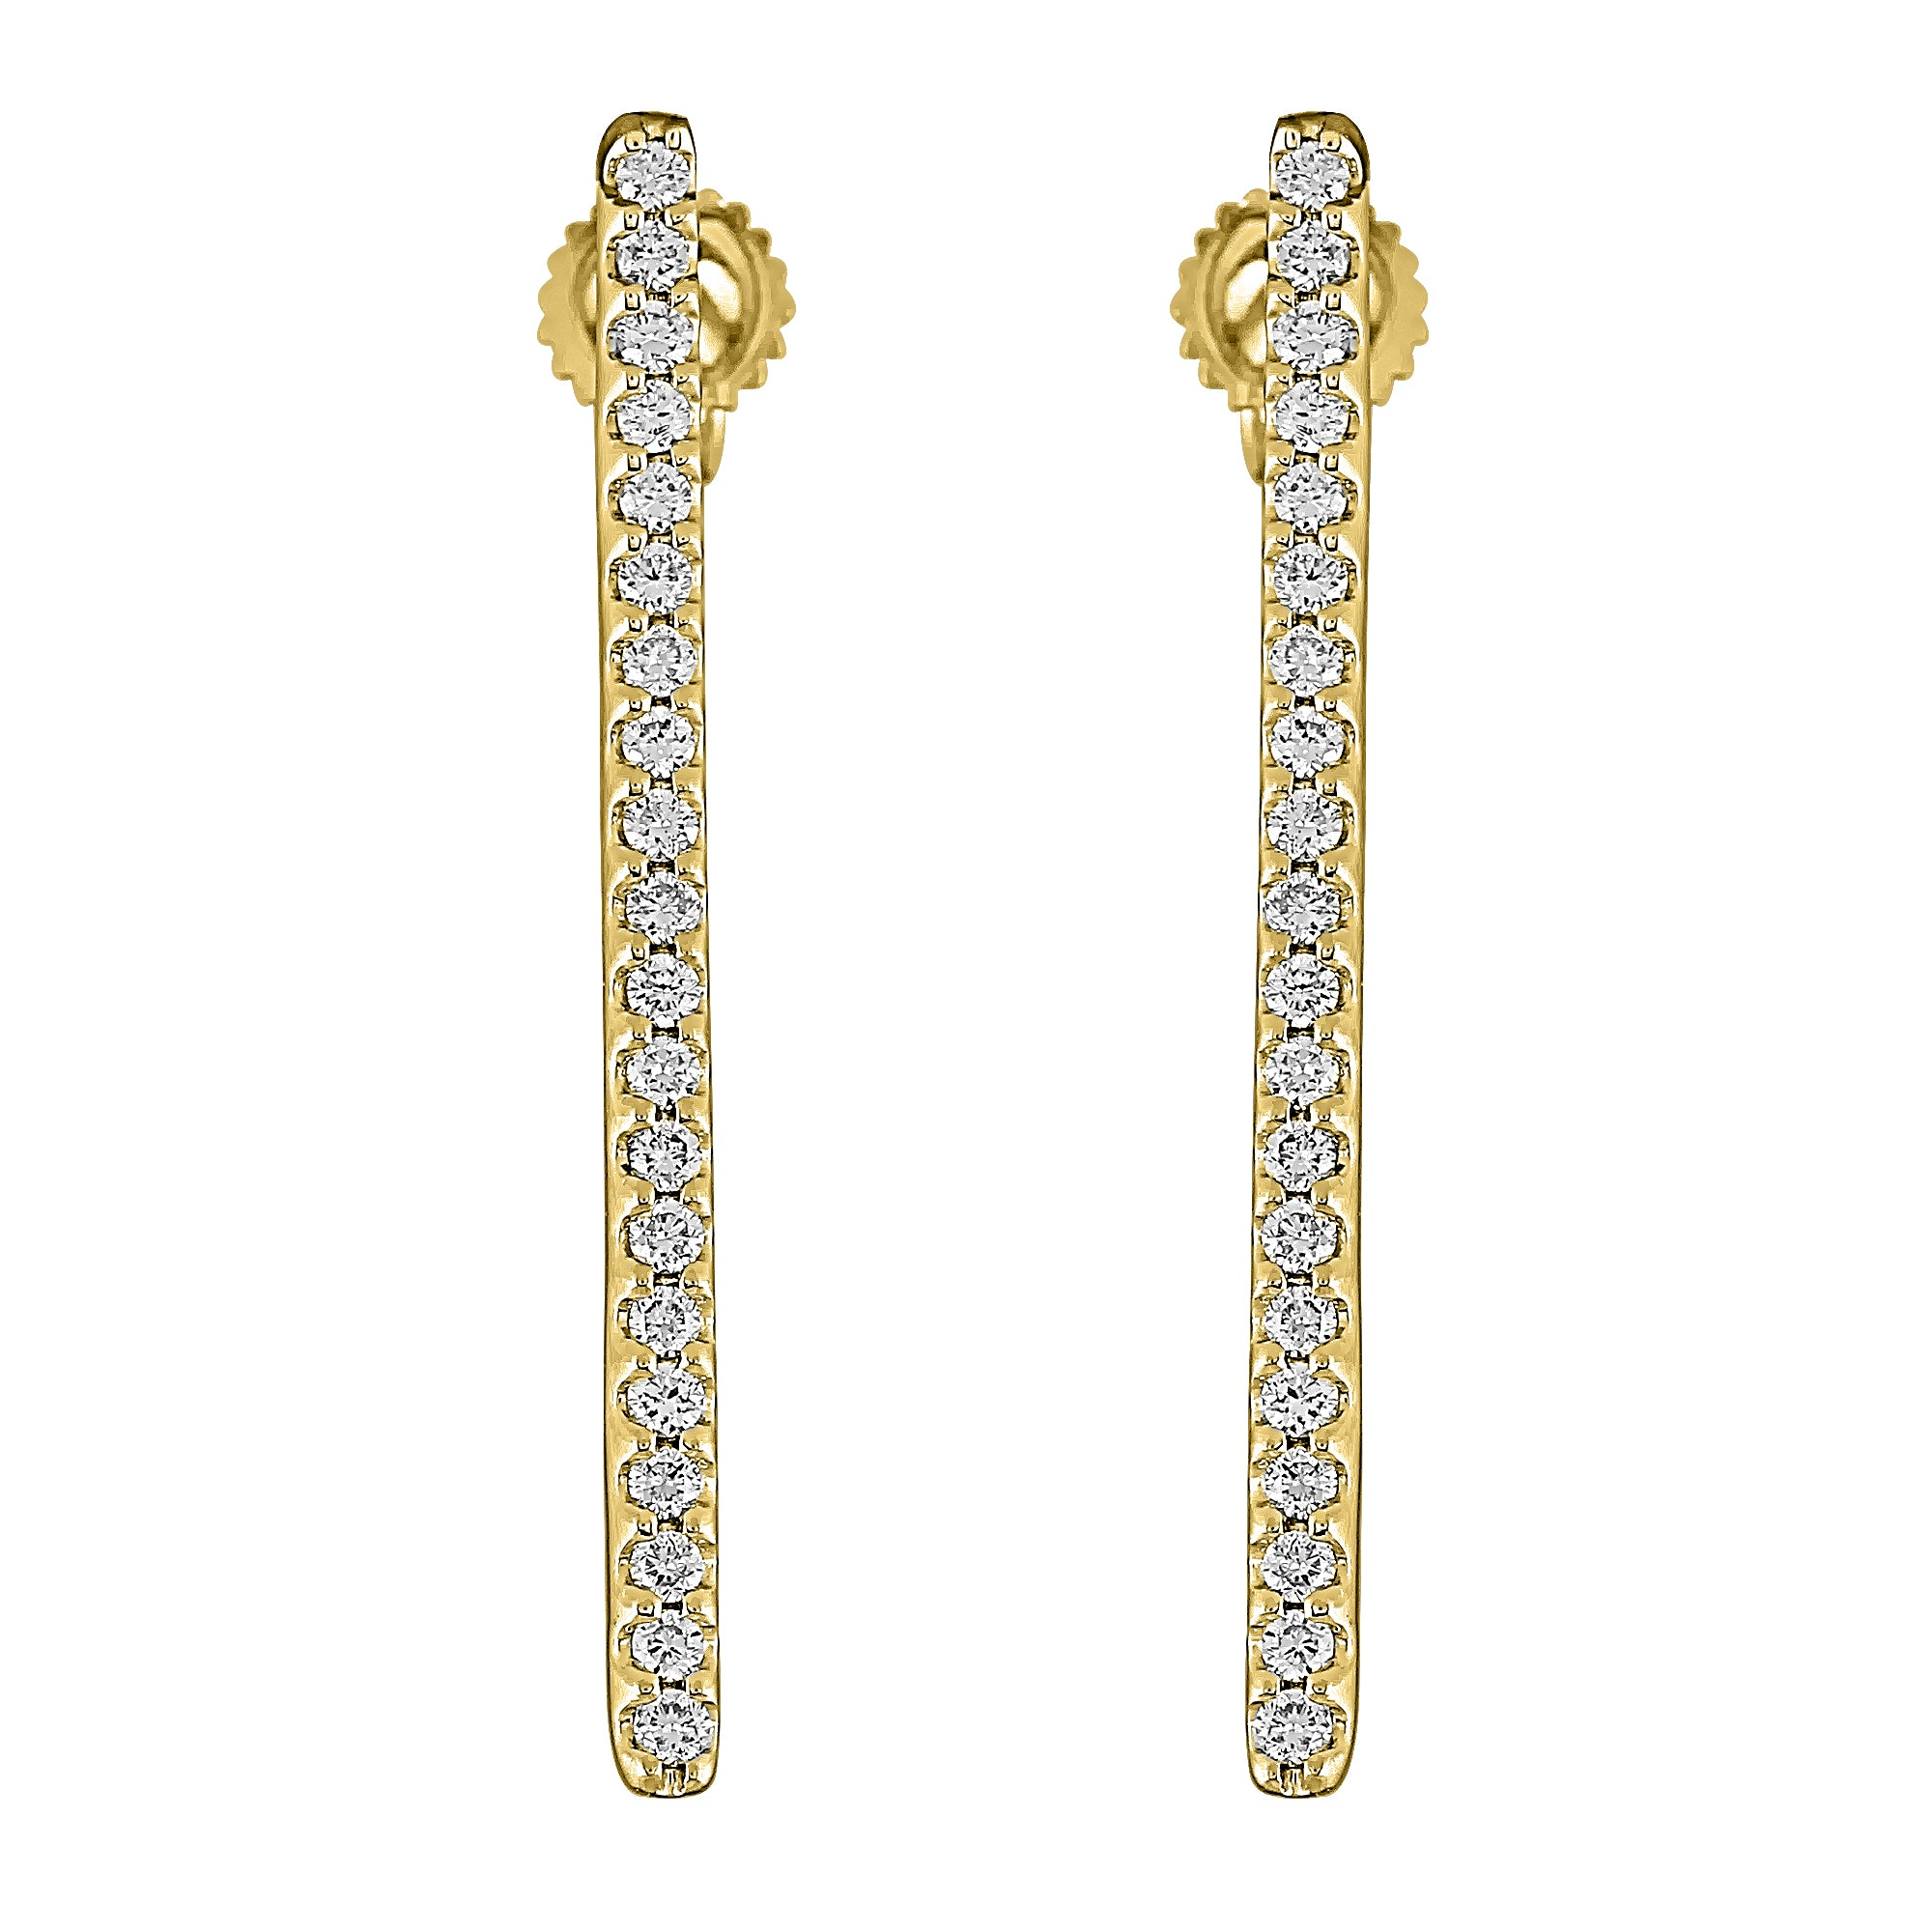 Flash Long Bar Lab-Grown Diamond Stud Earrings - 14k Gold Over Sterling Silver (.38 ct. tw.)